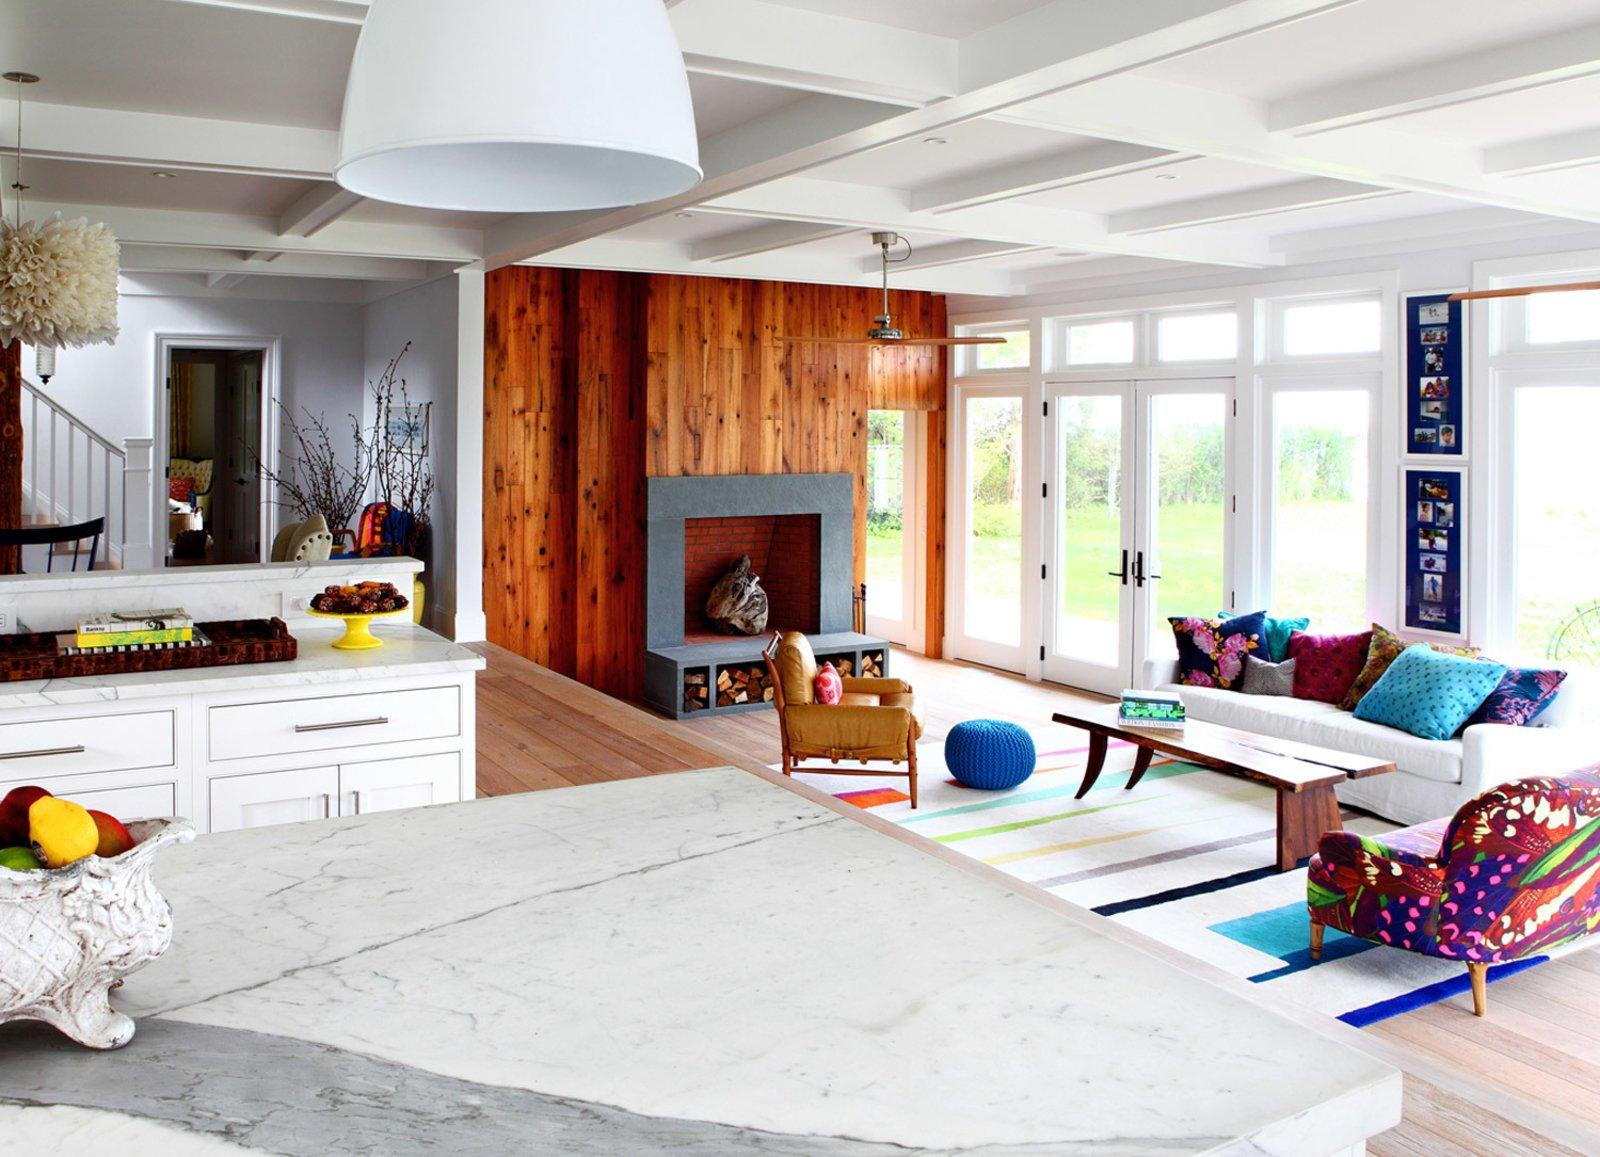 Husband and wife design team Robert and Cortney Novogratz who host HGTV's  Photo 6 of 10 in 9 Small Spaces With  Color